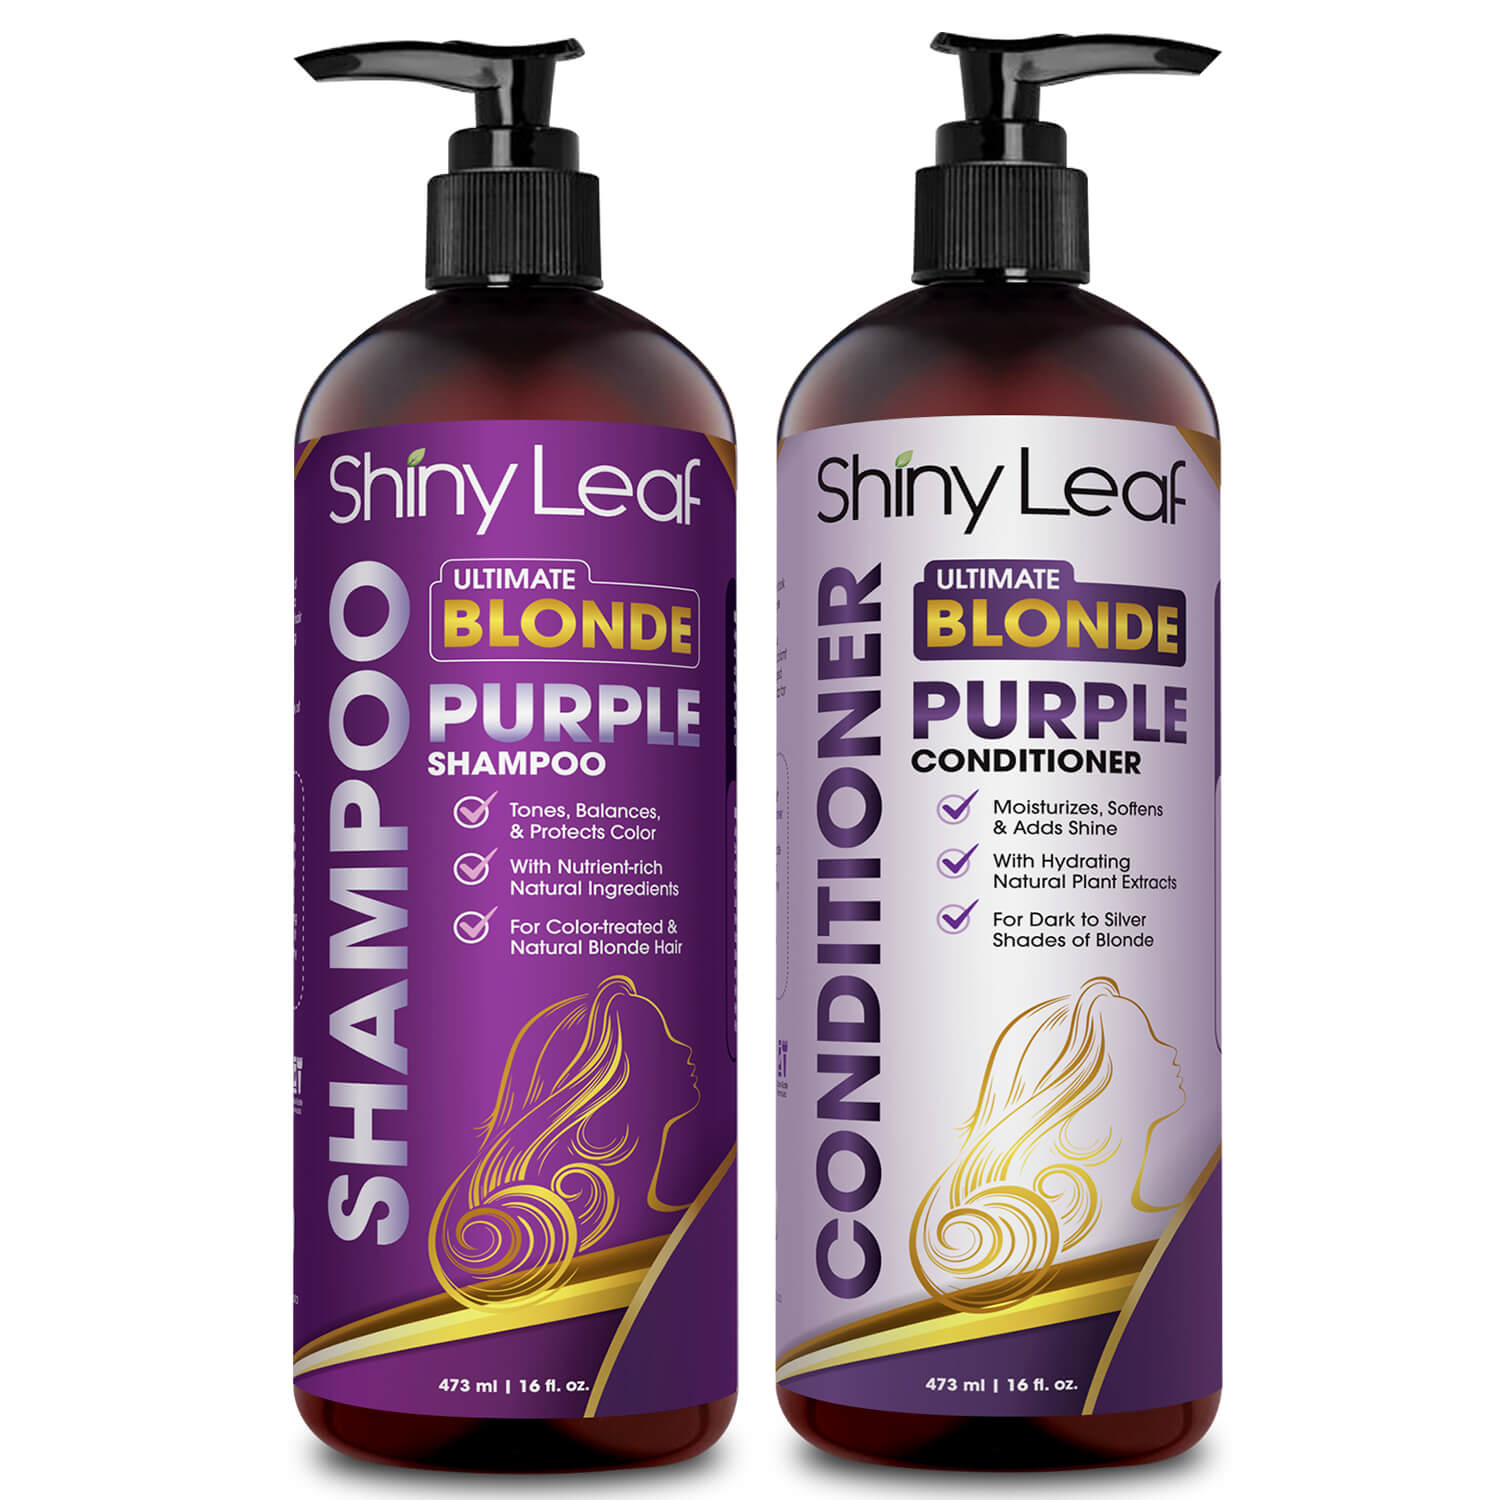 Ultimate Blonde Purple Shampoo and Conditioner Set